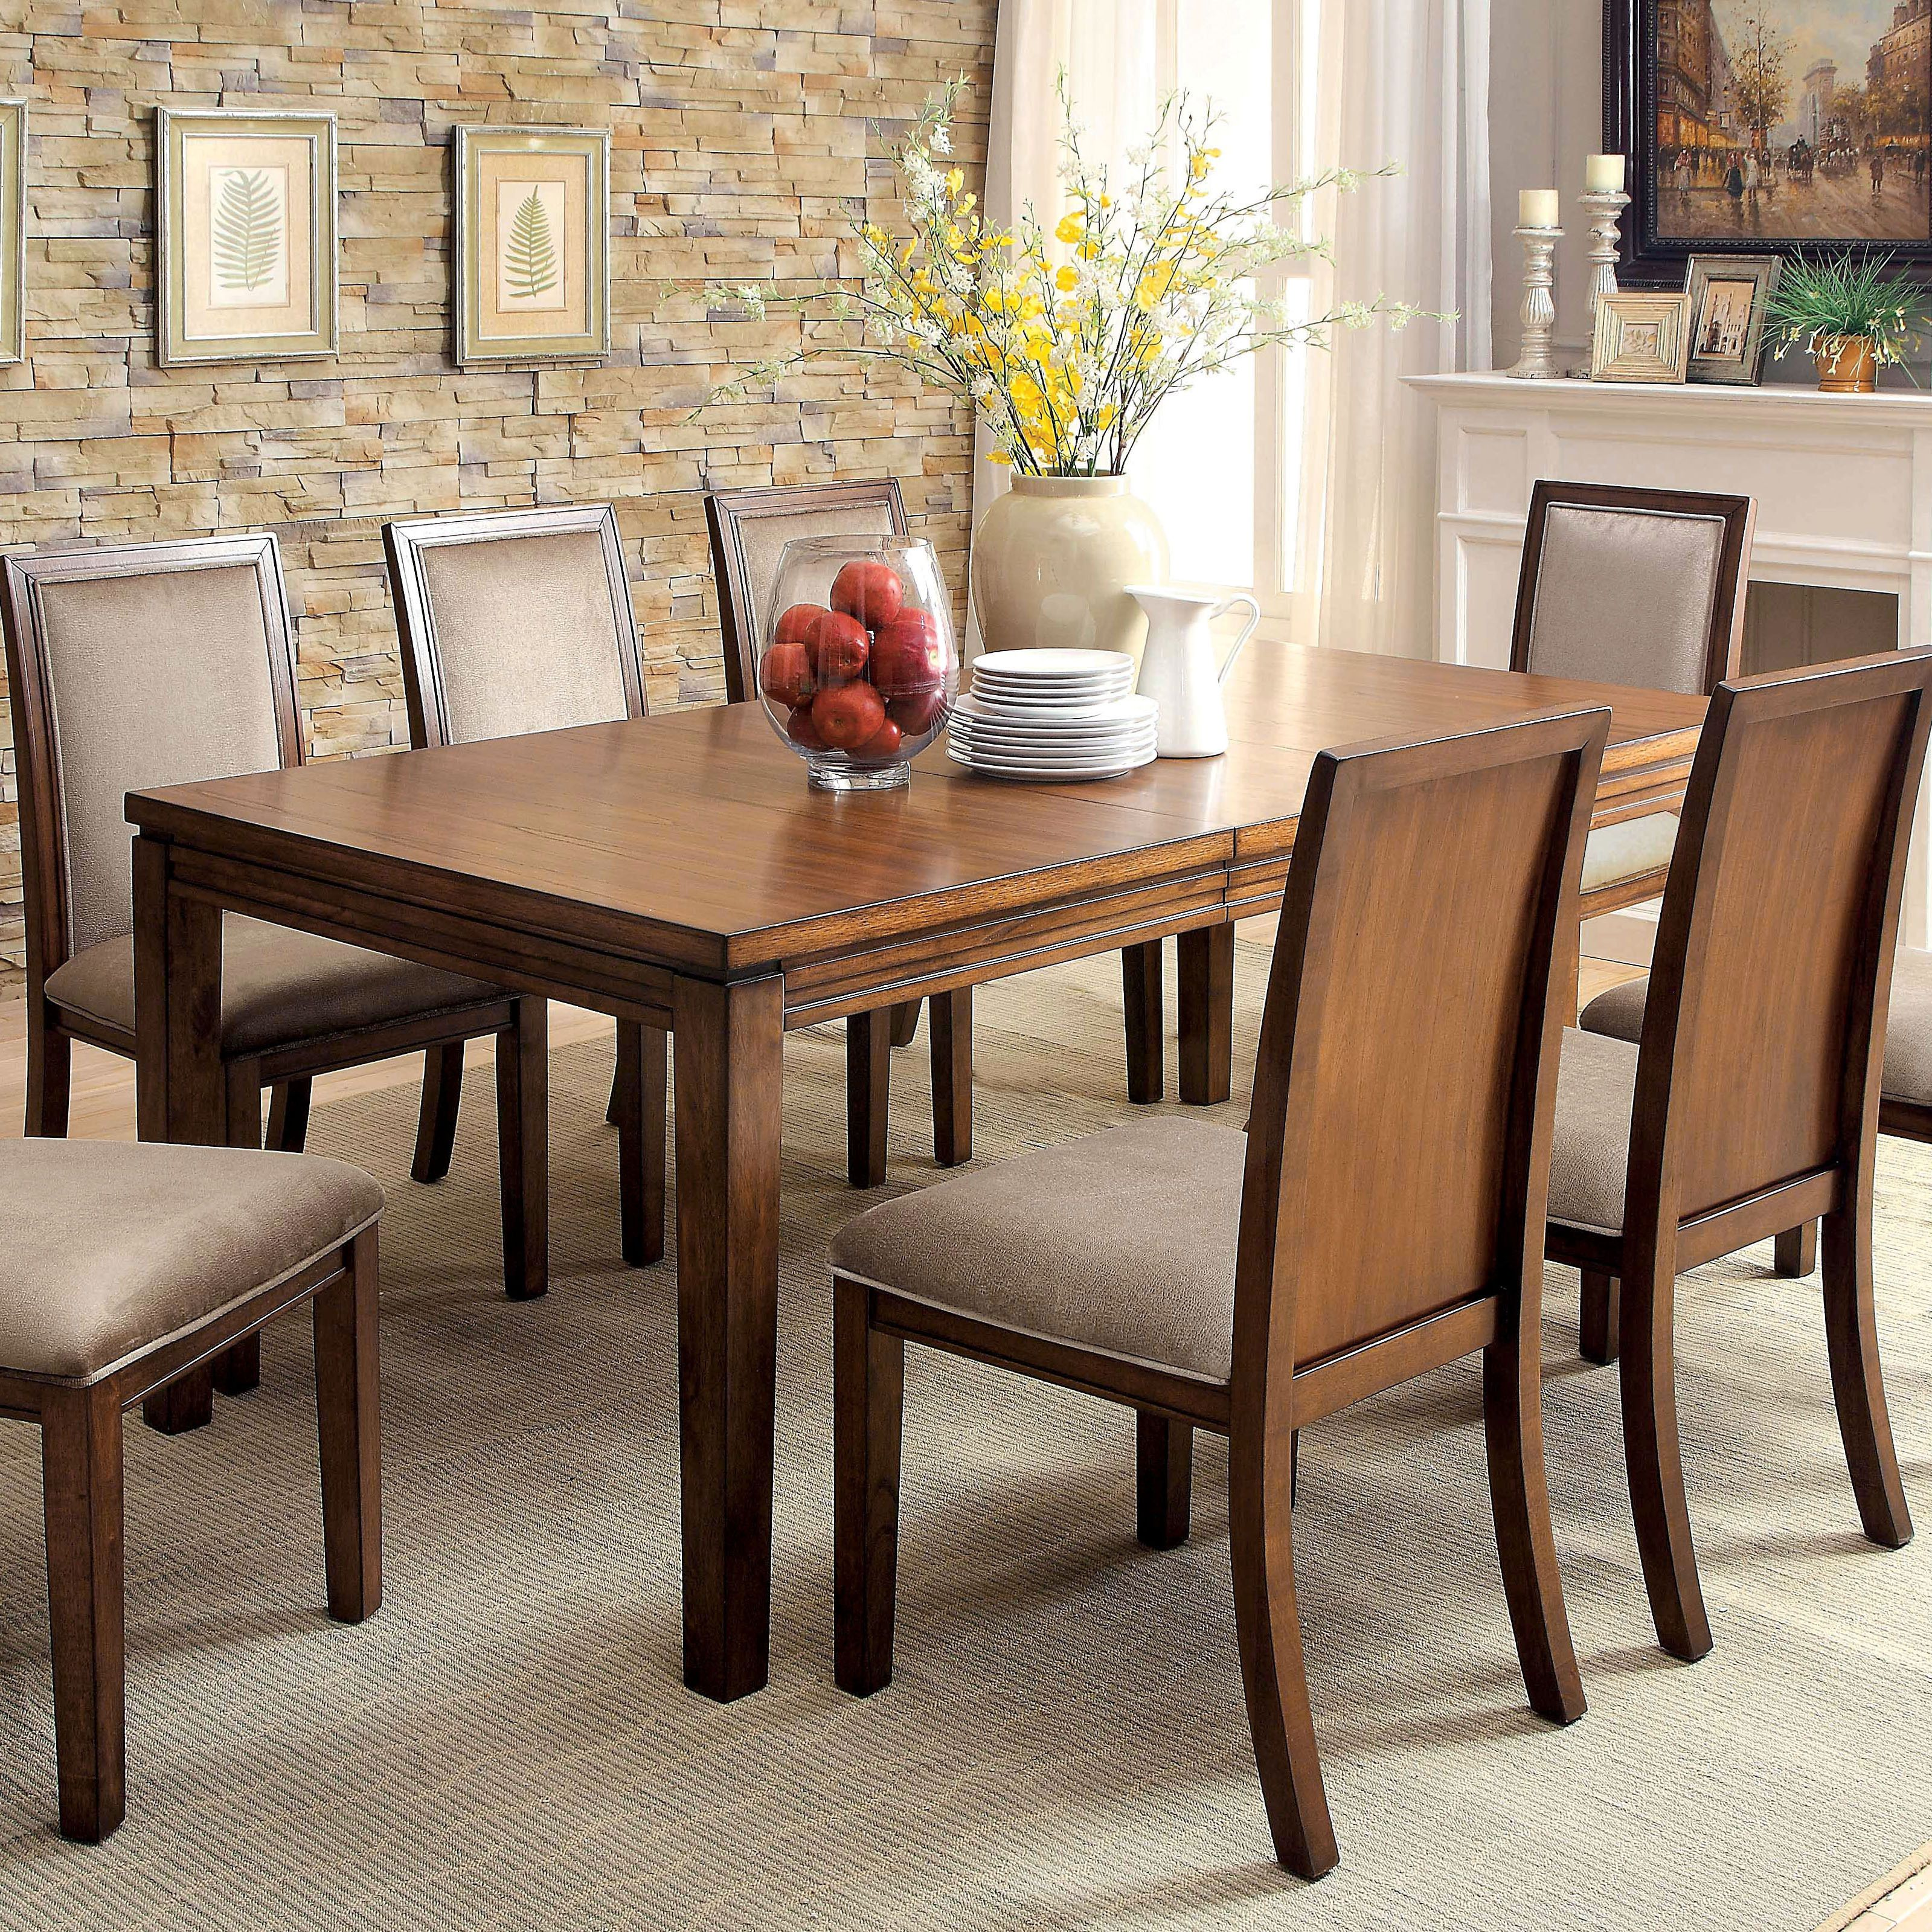 Furniture Of America Berla Country Style Expandable Dining Table Walnut Brown